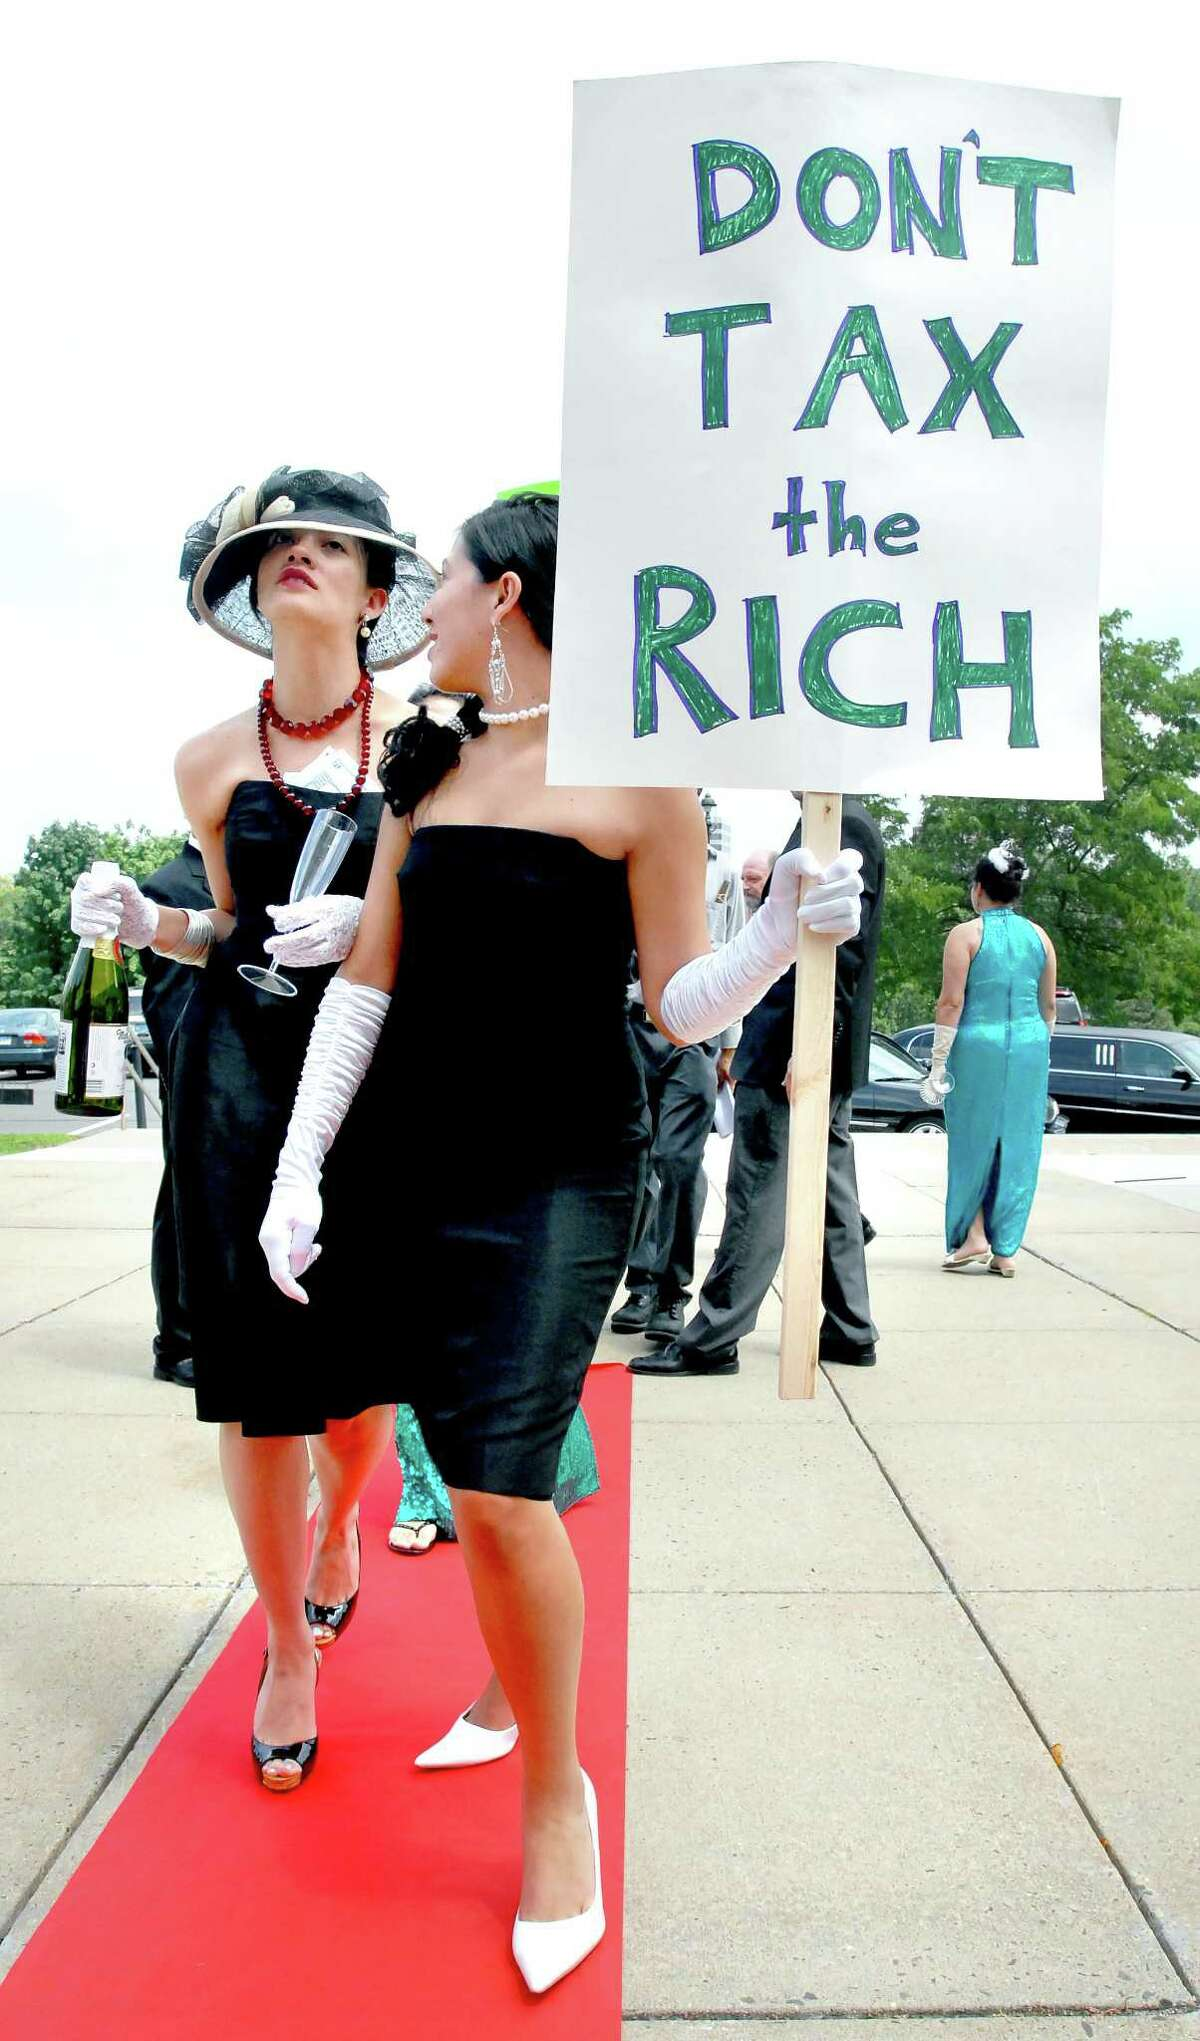 hart-billionaires-ag-7/30/09 Marisa Lindsey (left) and Nicole Diaz (right) of Billionaires for Budget Cuts walk the red carpet to a press conference on the steps of the Capitol Building in Hartford on 7/30/09 making light of Governor M. Jodi Rell's Executive Order cutting funding for public services without increasing taxes for the wealthy. Both are from Hartford. Photo by Arnold Gold AG0320A